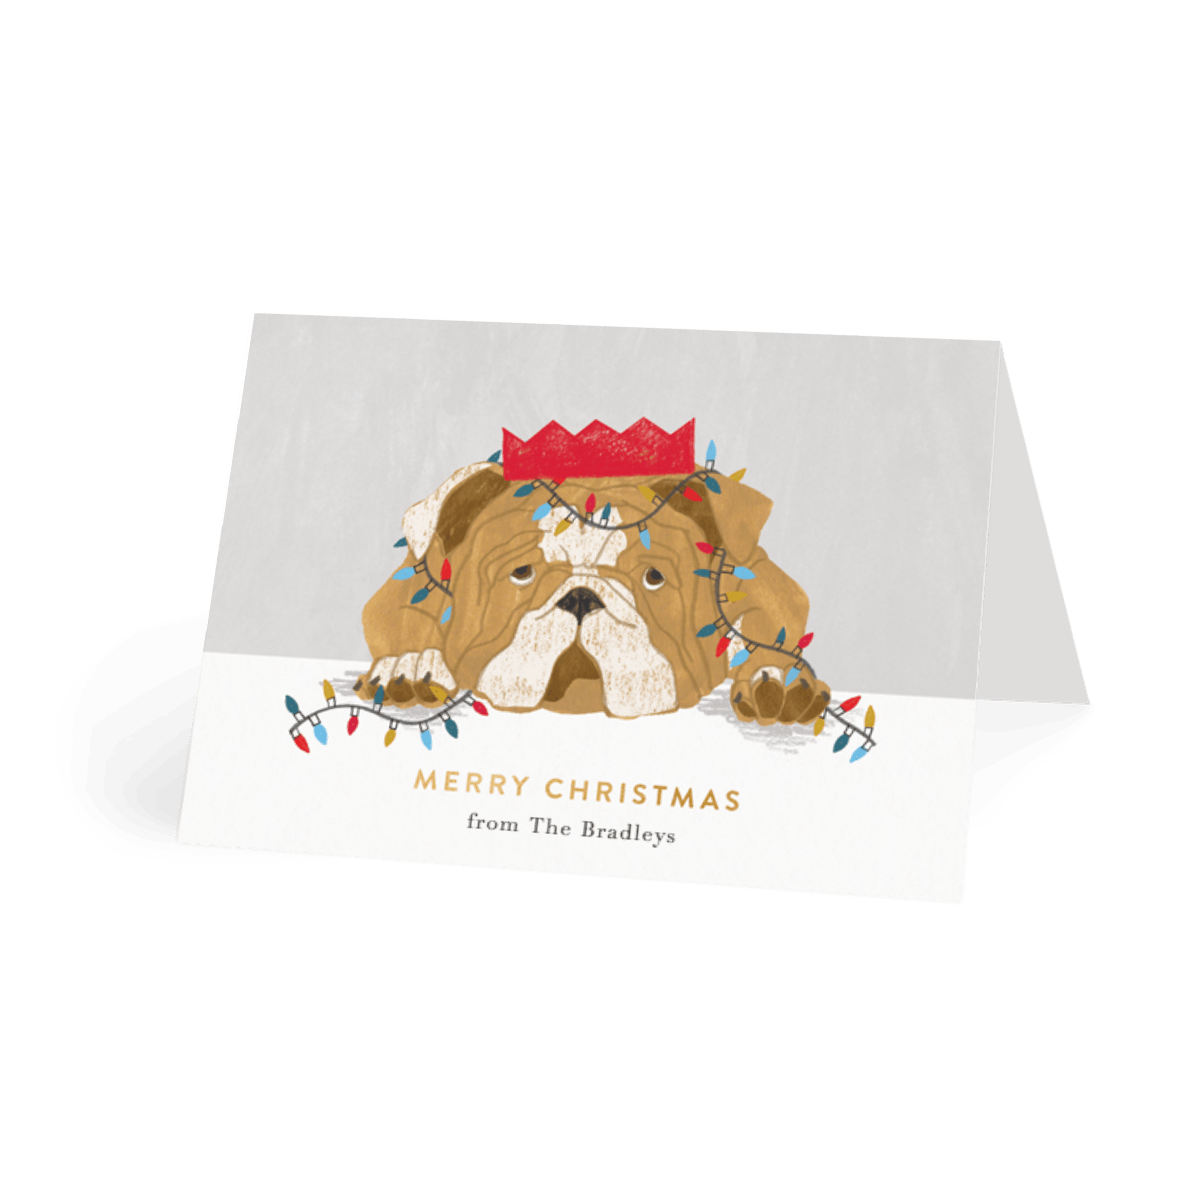 Https%3a%2f%2fwww.papier.com%2fproduct image%2f90716%2f14%2fchristmas bulldog 22705 front 1571414346.png?ixlib=rb 1.1